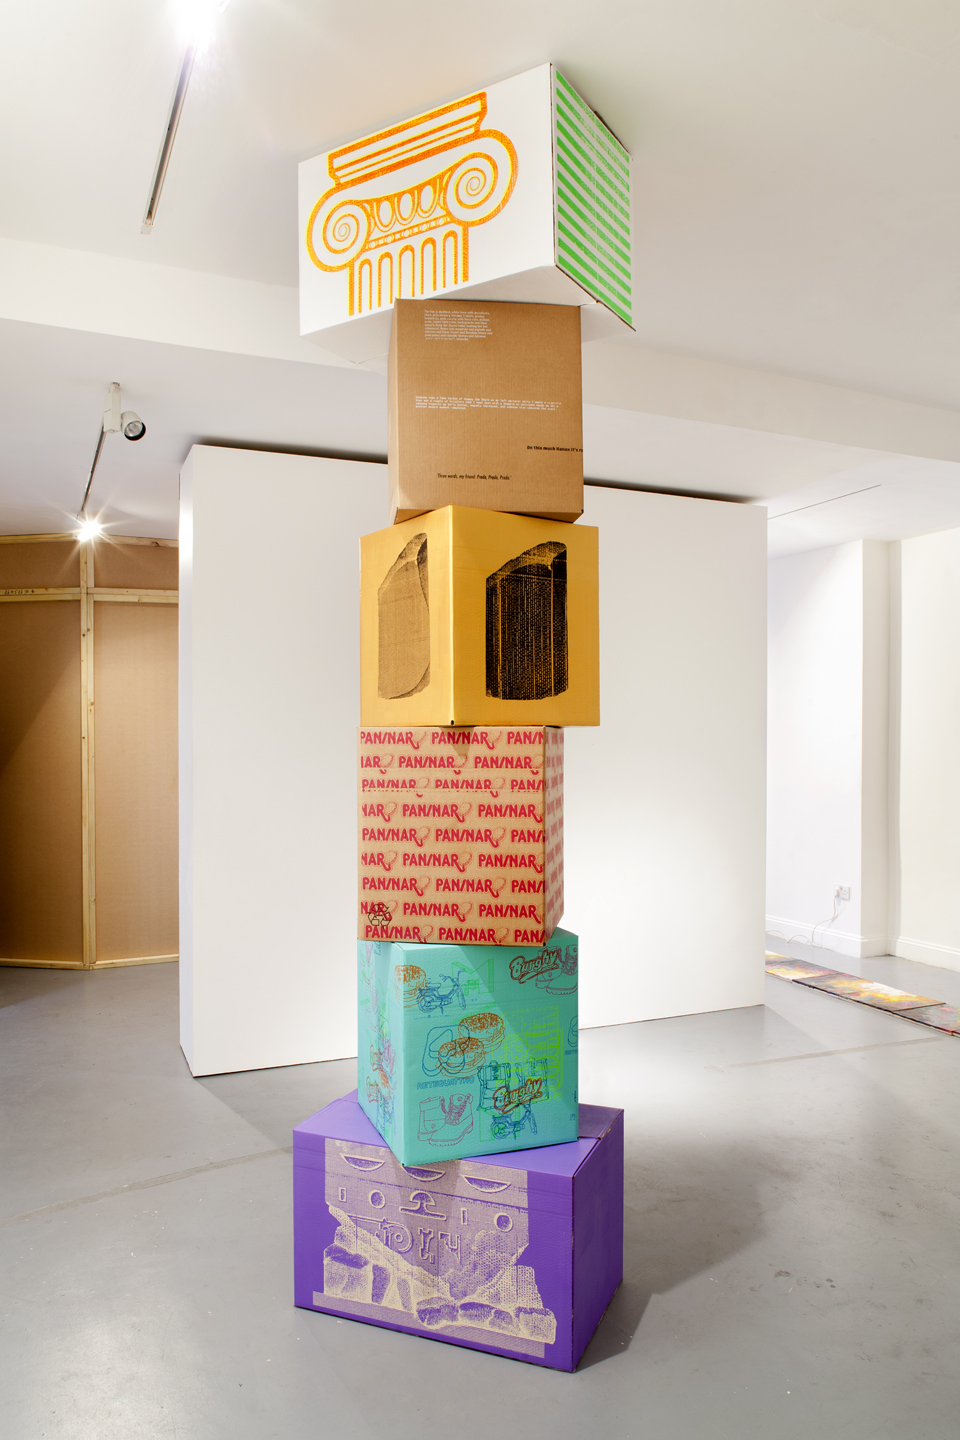 Pan-Stack, 2012 (part of Product Placement @ Angus Hughes Gallery). Screenprinting ink on cardboard, 300 x 75 x 75 cm. © Photograph Michele Panzeri.